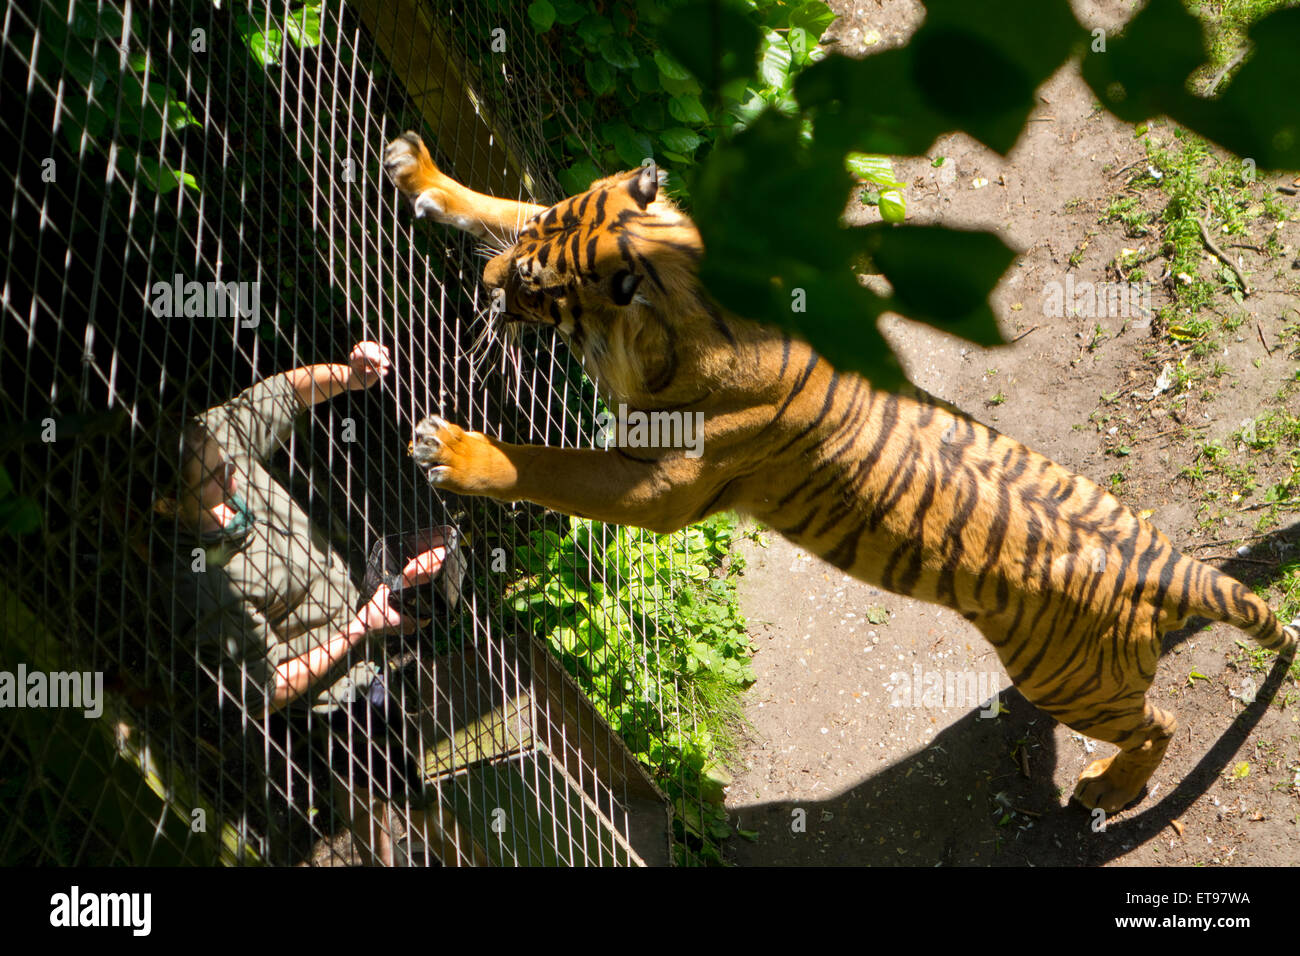 Captive tiger hand feed zoo keeper feeding time cage - Stock Image